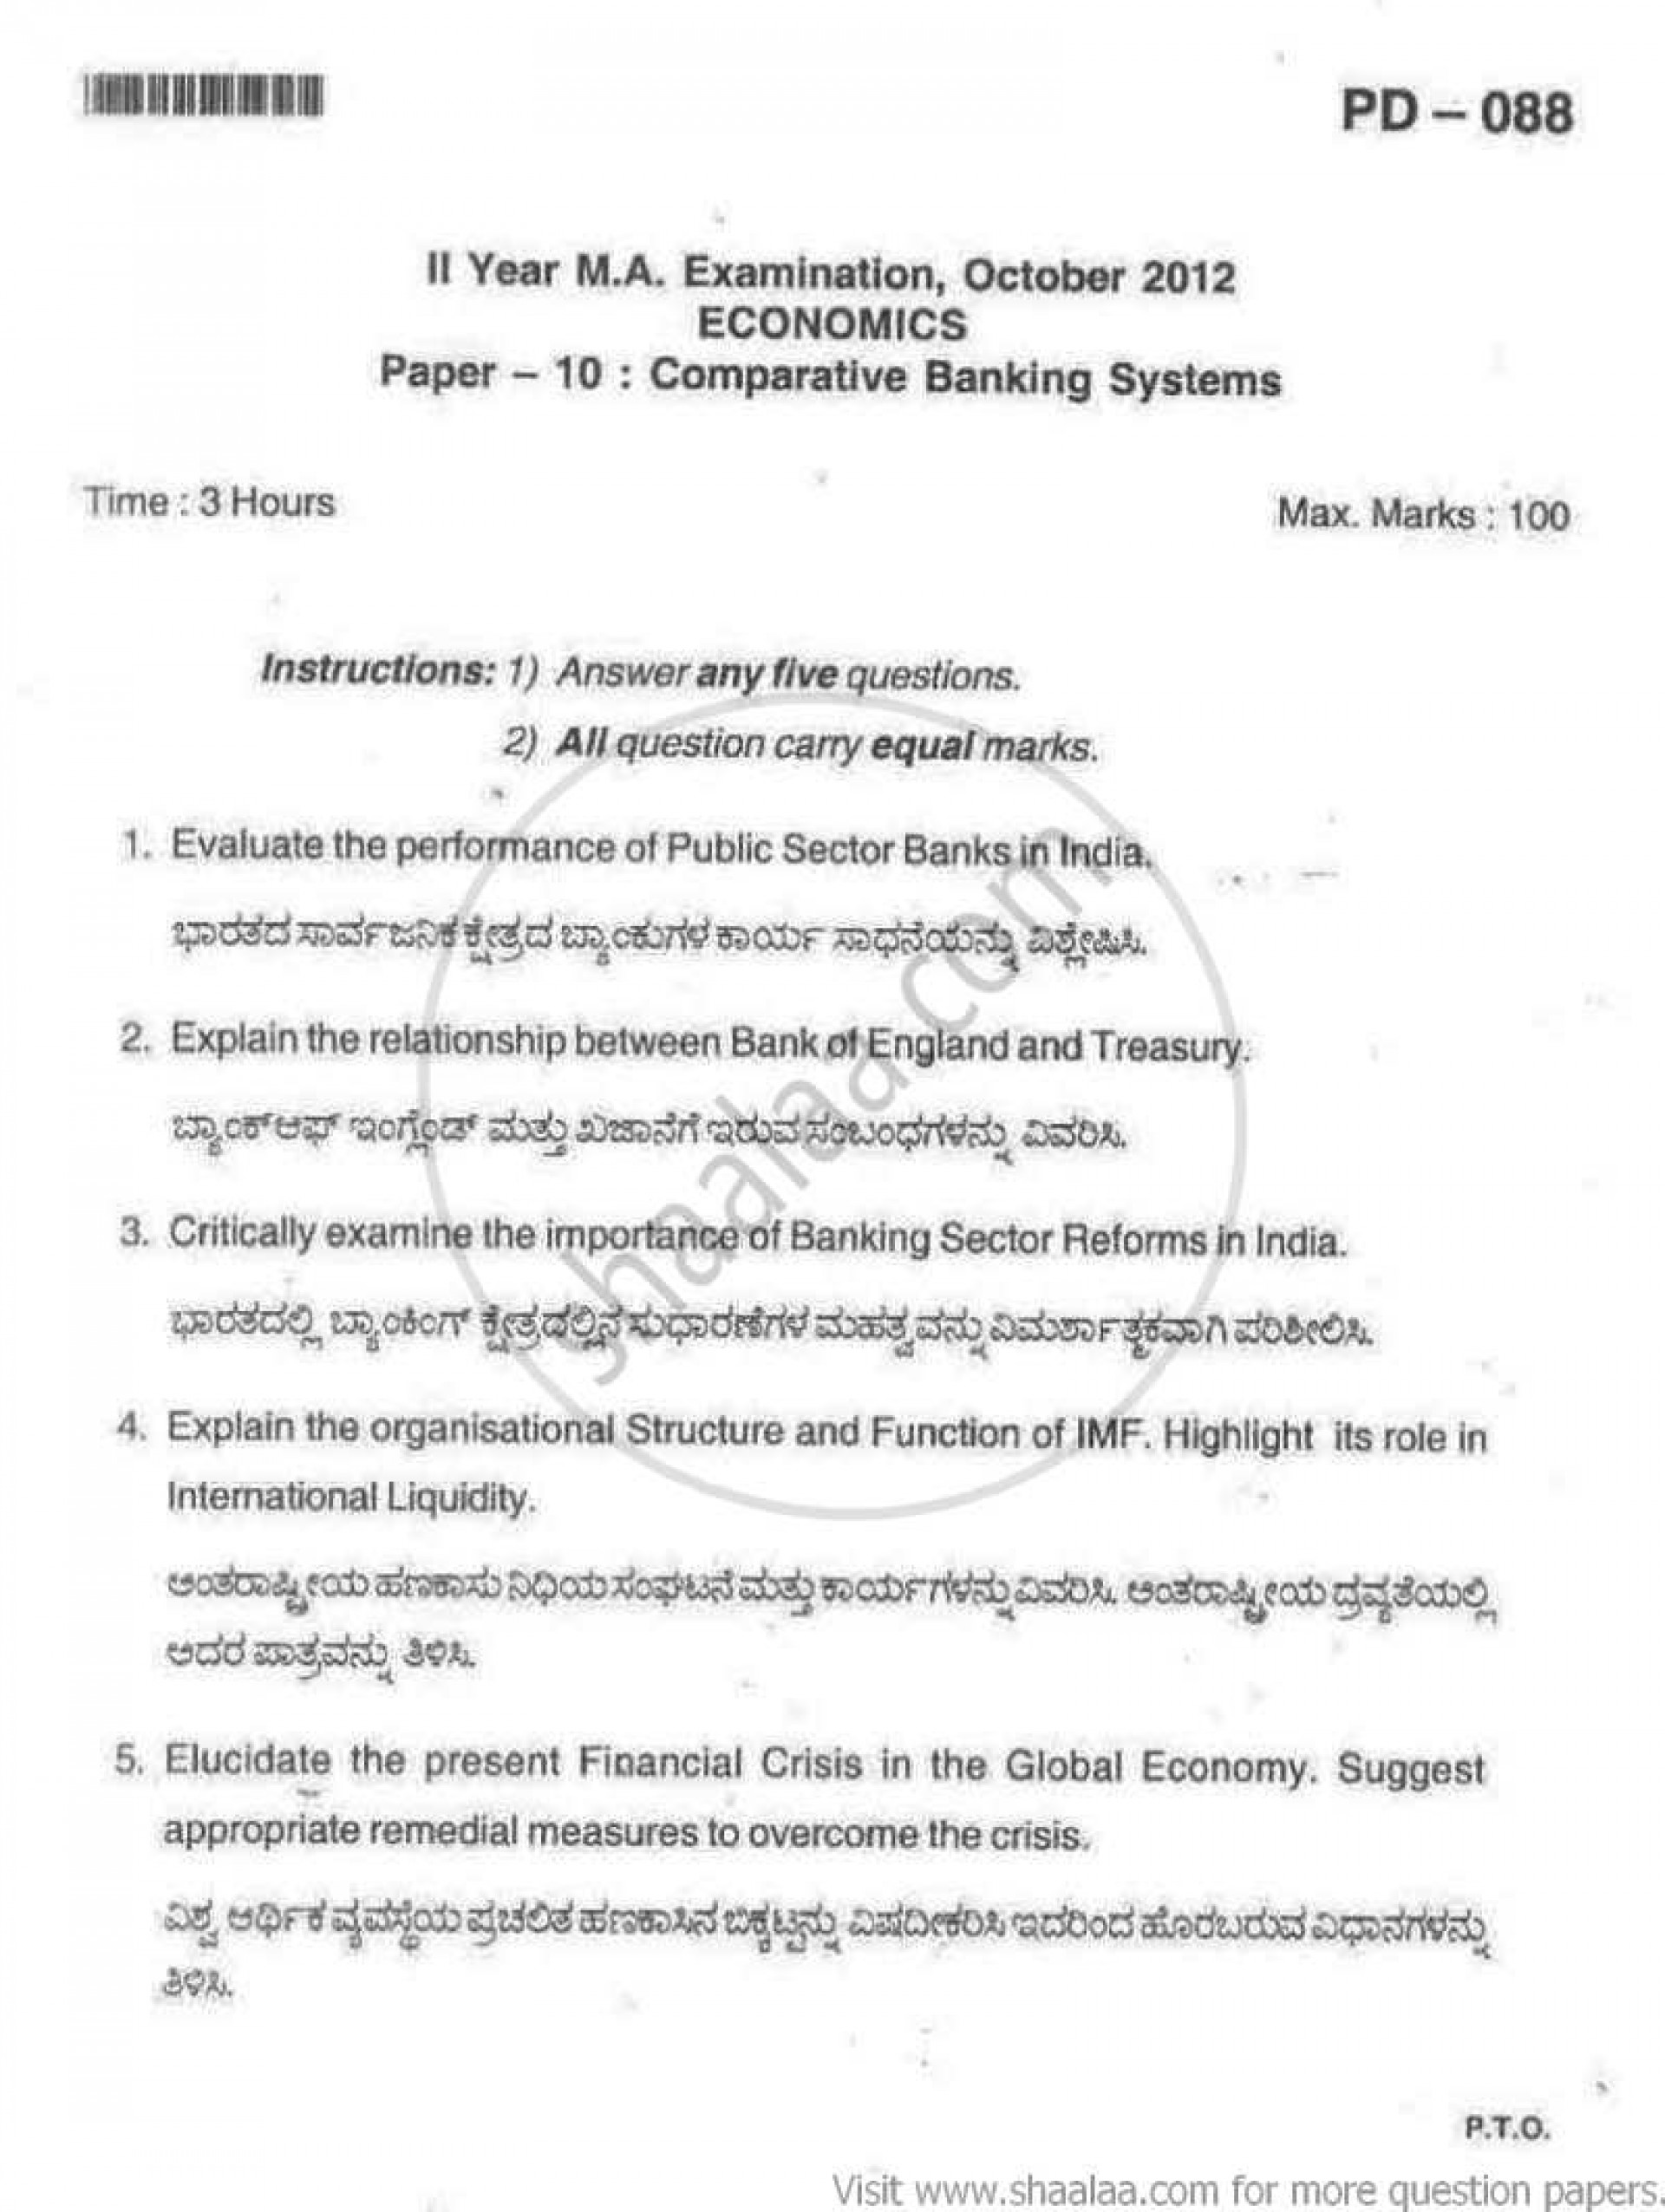 006 Essays Spanish Essay In Page Writing An Tips India October Arts Economics Ma Part Comparative Banking Systems Bangalore Univers Write Your How To About Yourself Phrases Google What Imposing Is English From Called 1920